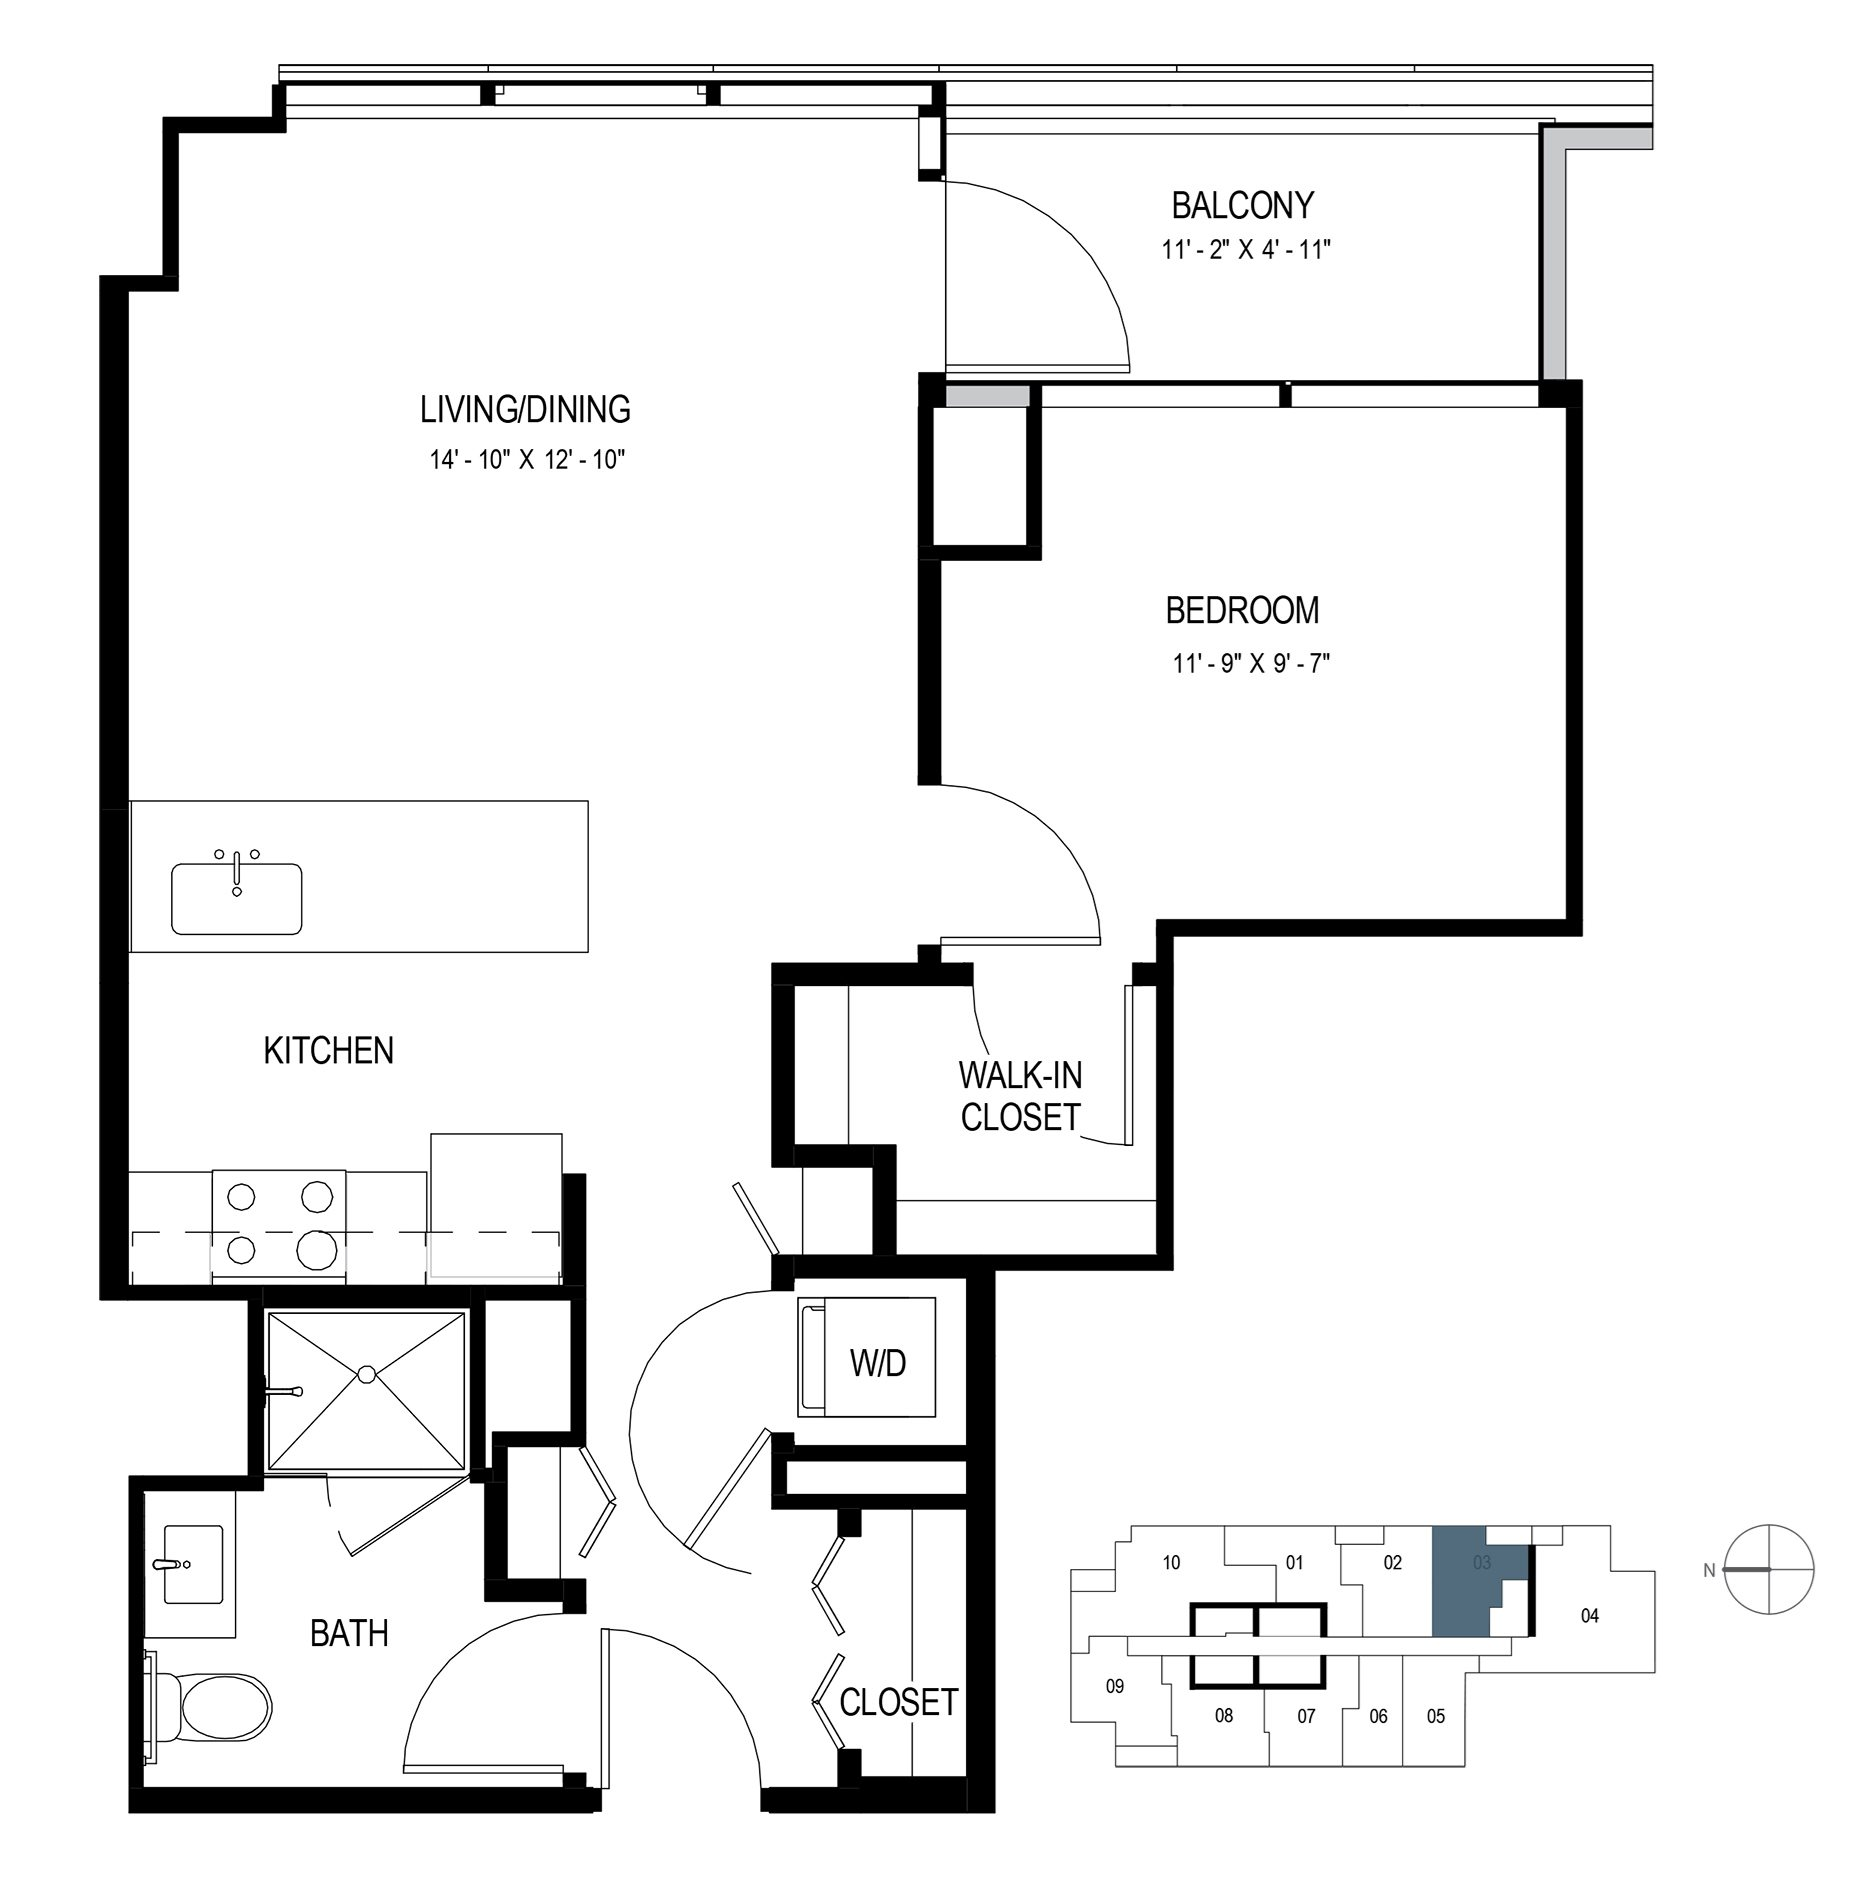 One Bedroom (700 sf) Floor Plan 6